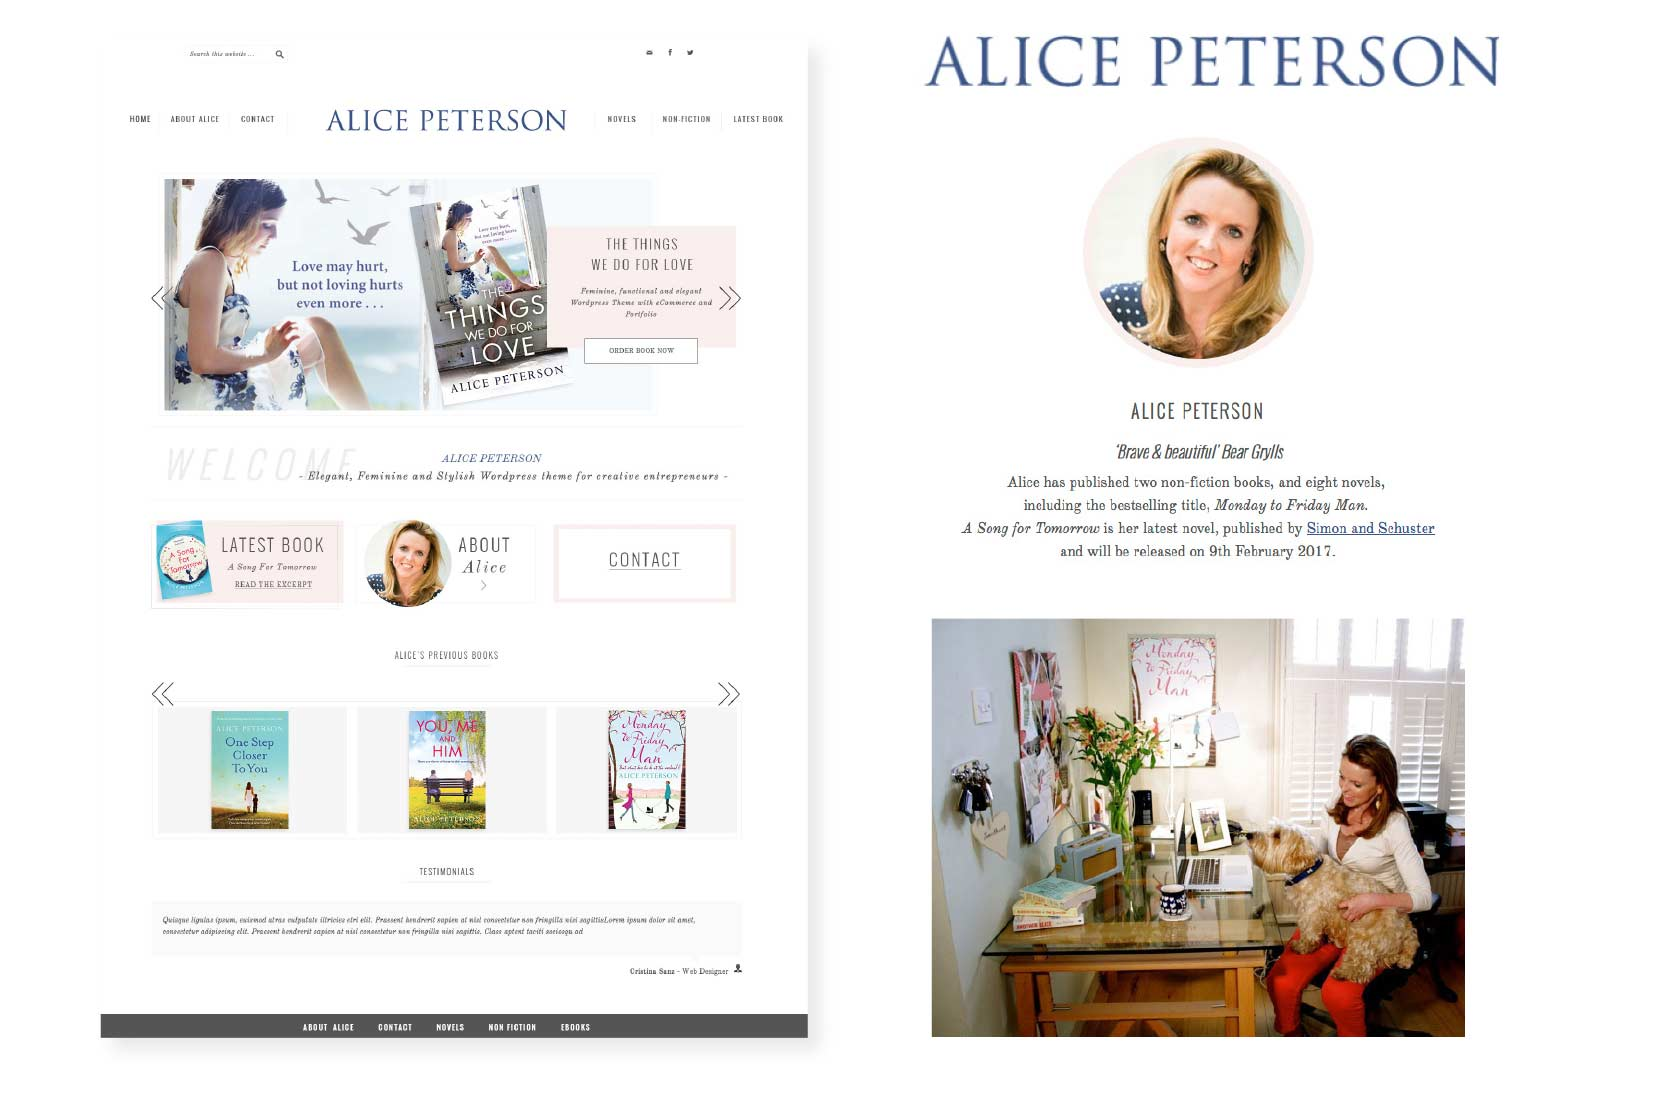 Alice Peterson website homepage and biography